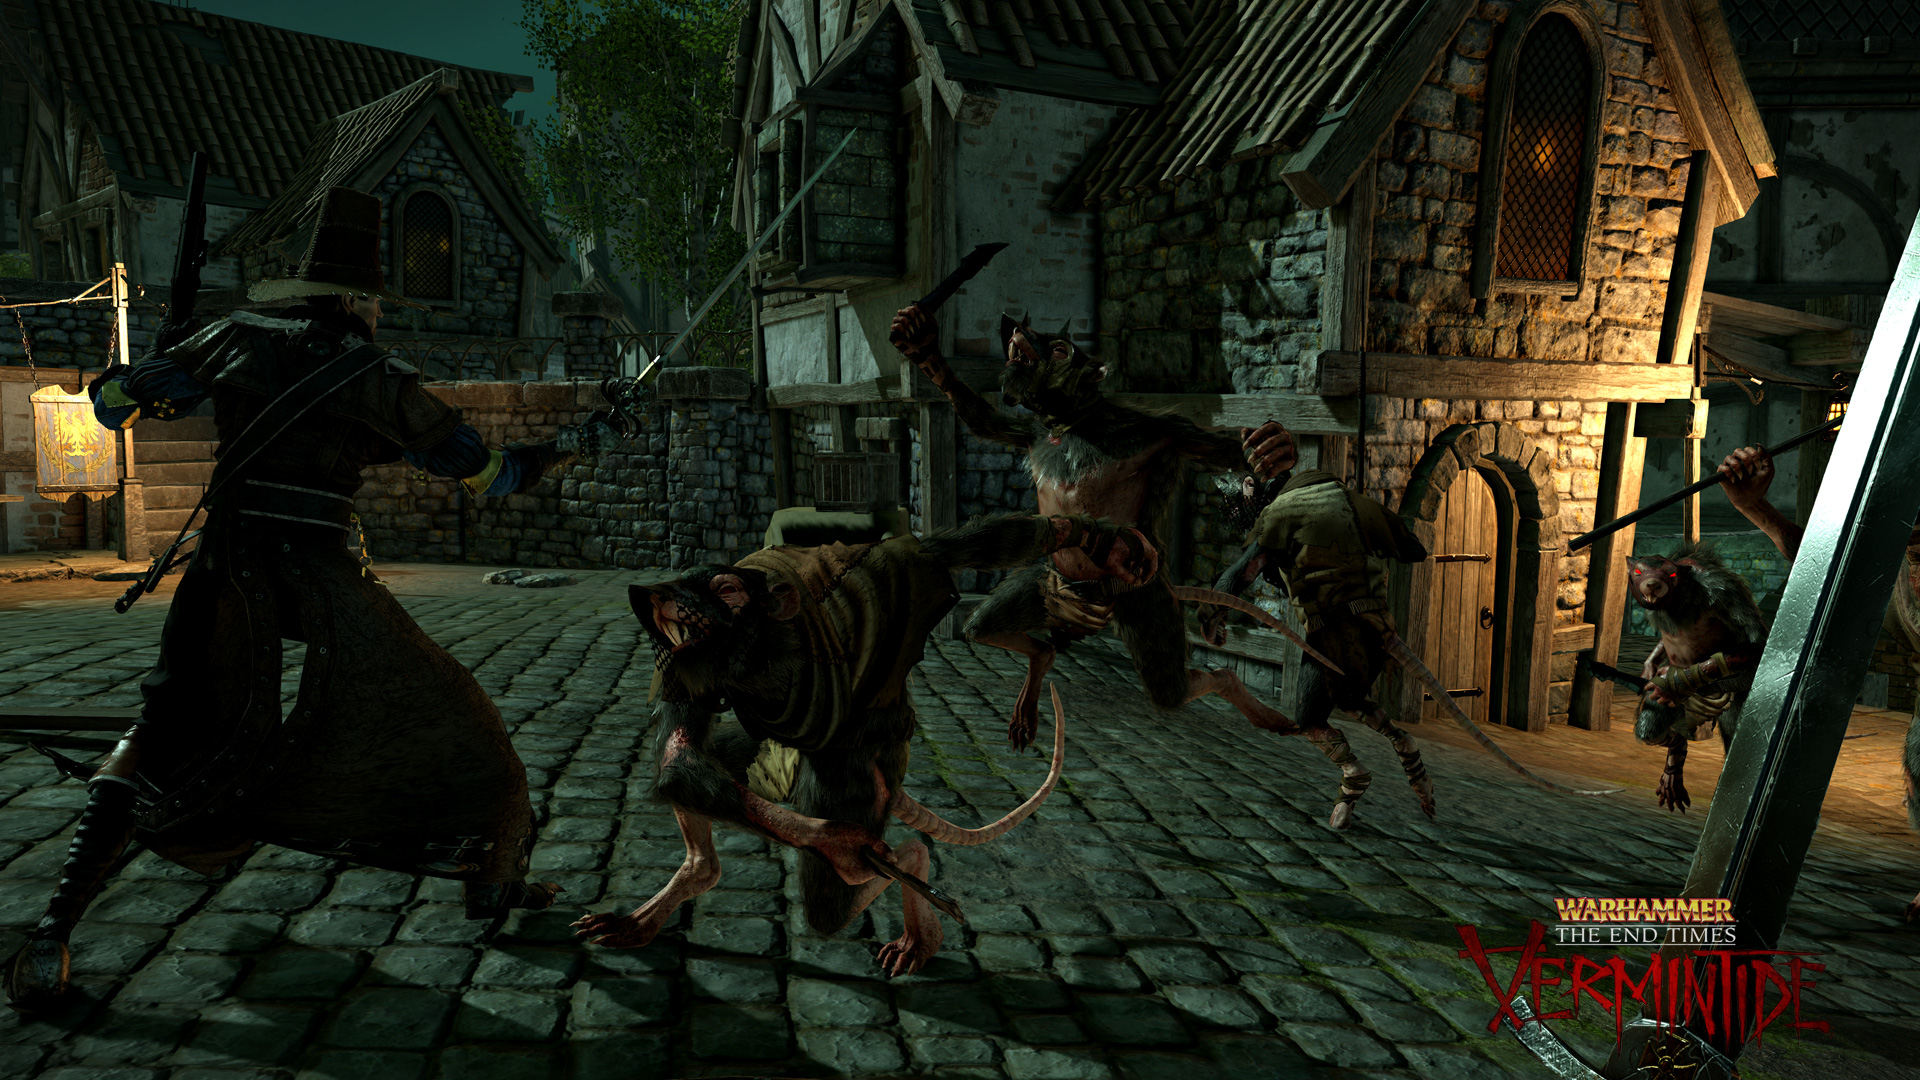 Fatshark Games Announces Warhammer: End Times - Vermintide